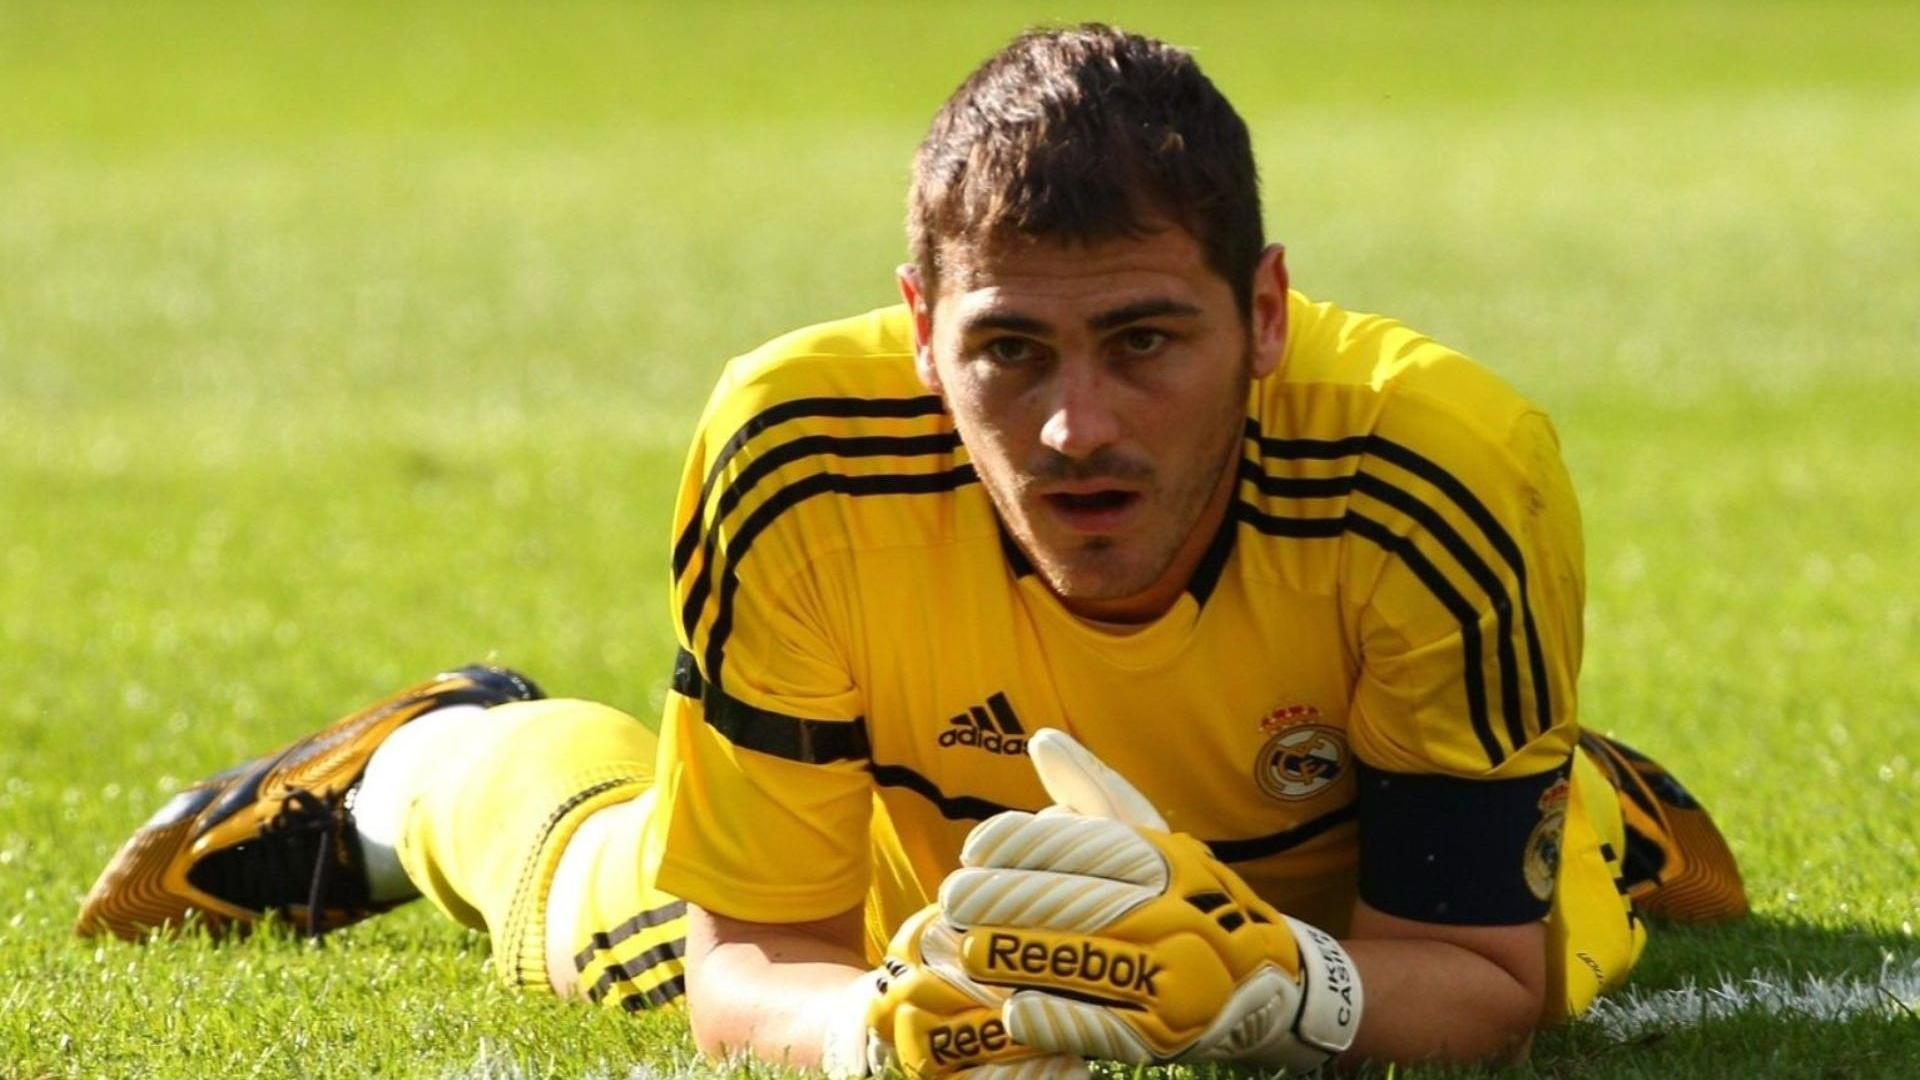 Soccer Iker Casillas Wallpaper 04